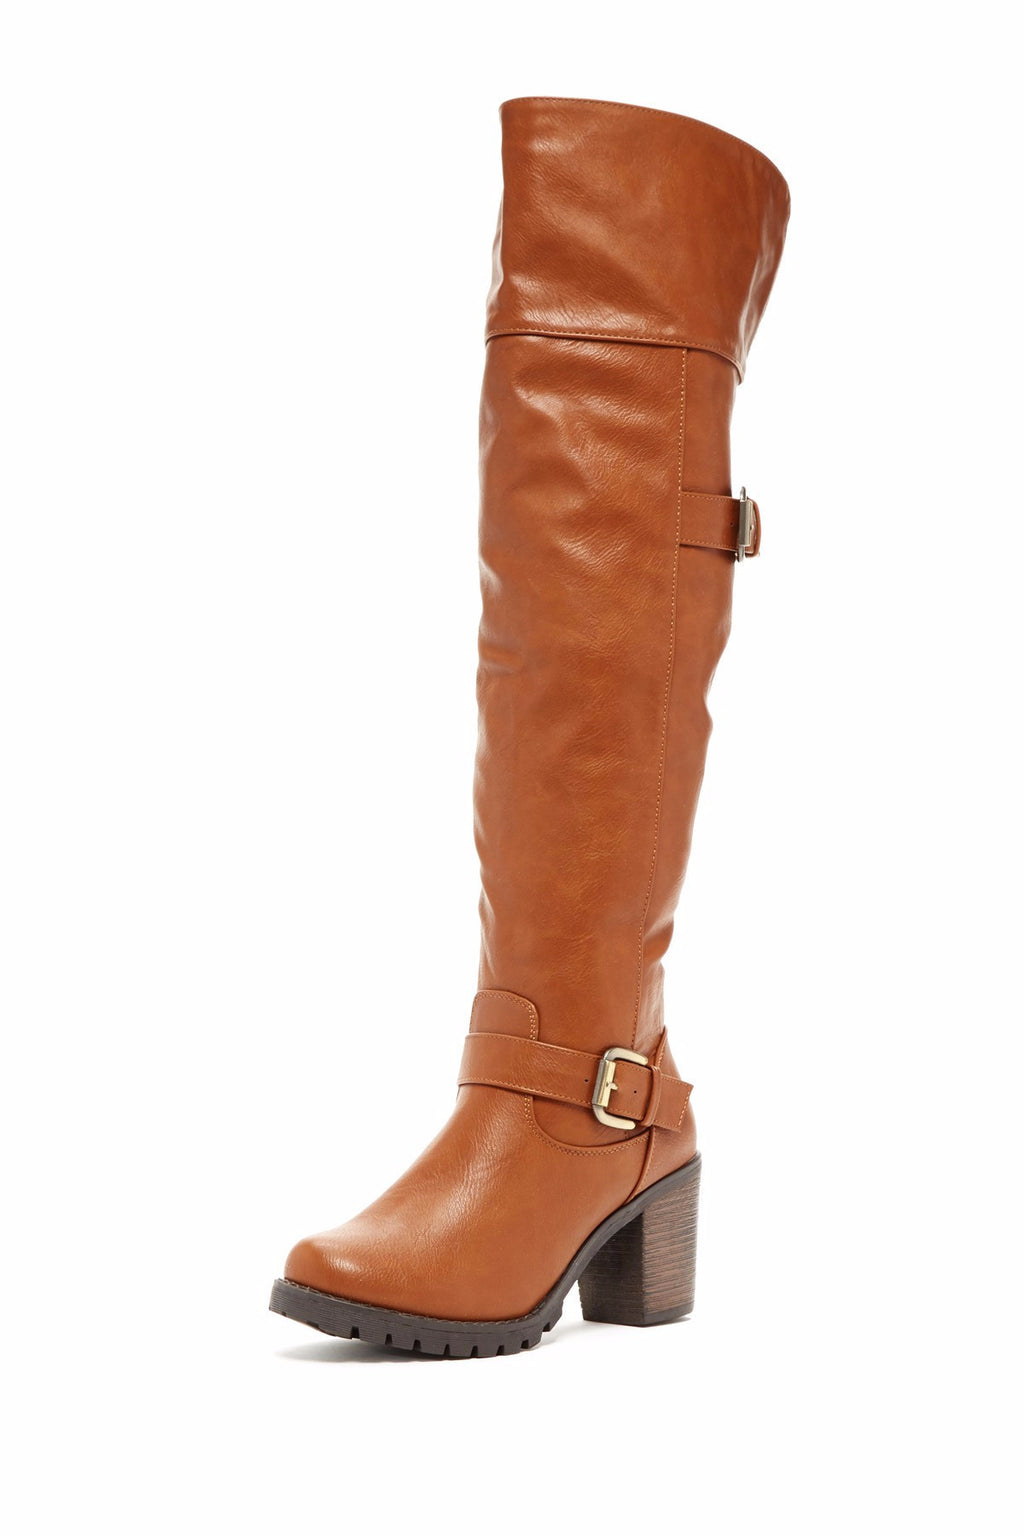 Elegant Tres Shaft Over the Knee Boot - LURE CHAUSSURES SHOETIQUE - 1